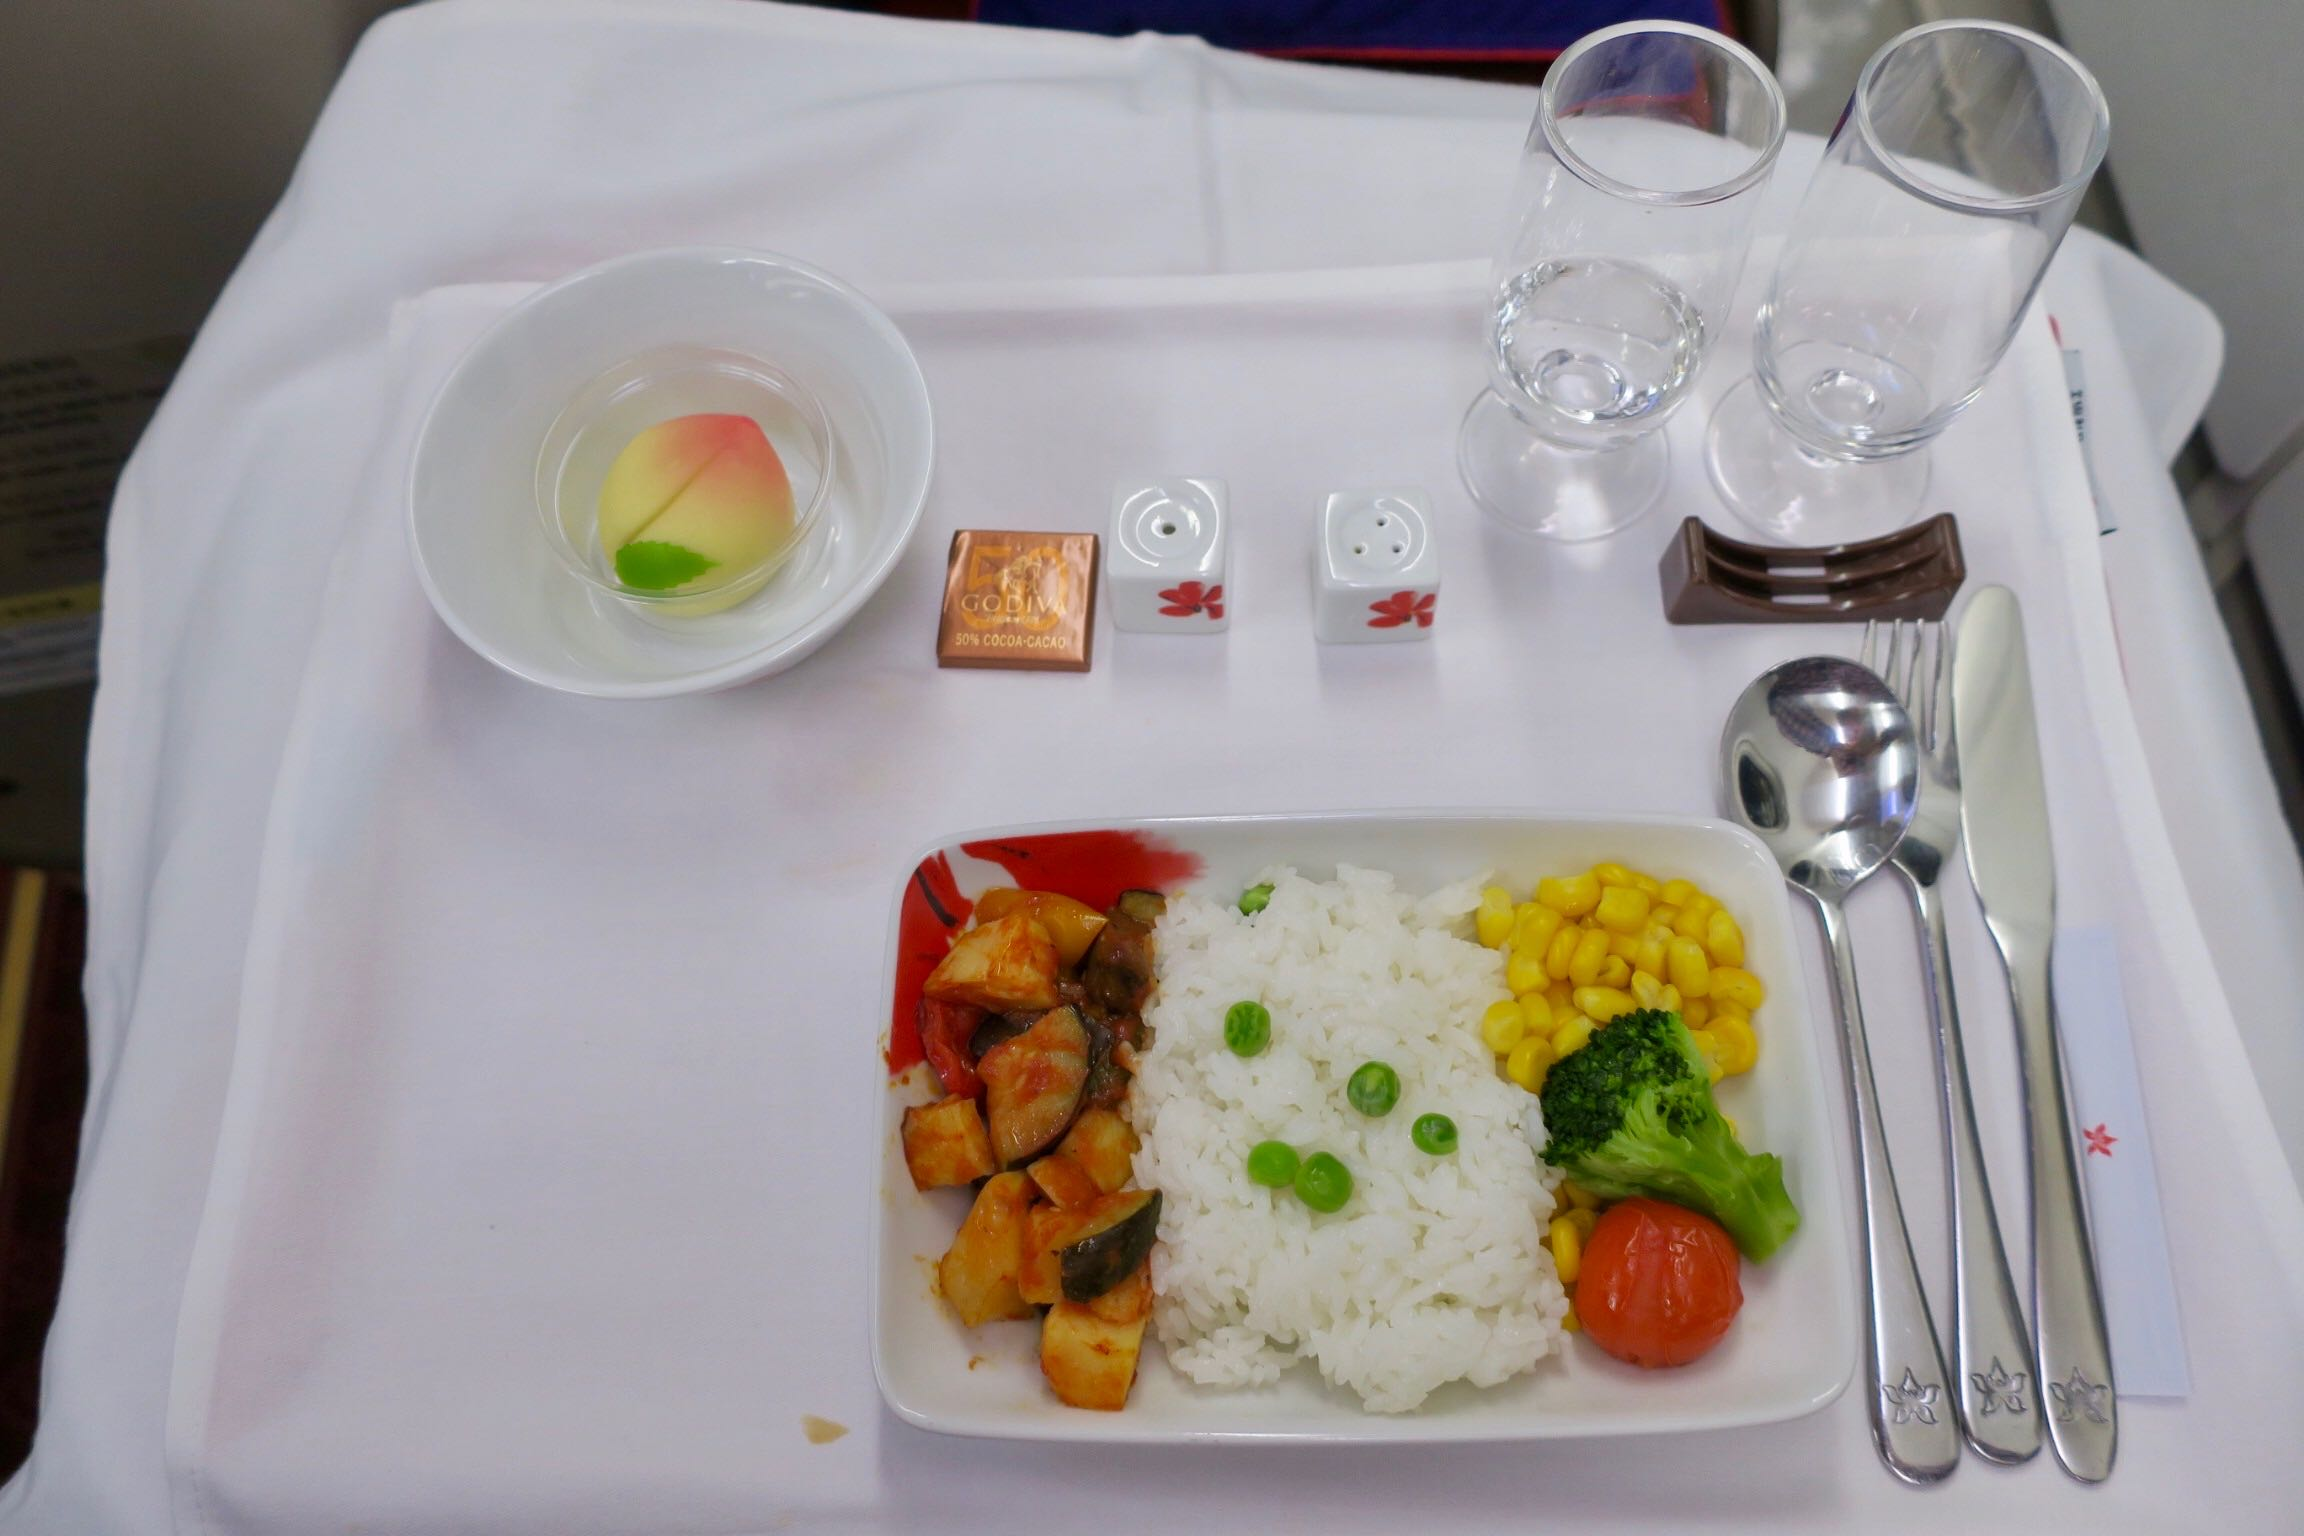 Hong Kong Airlines A330 Business Class meal